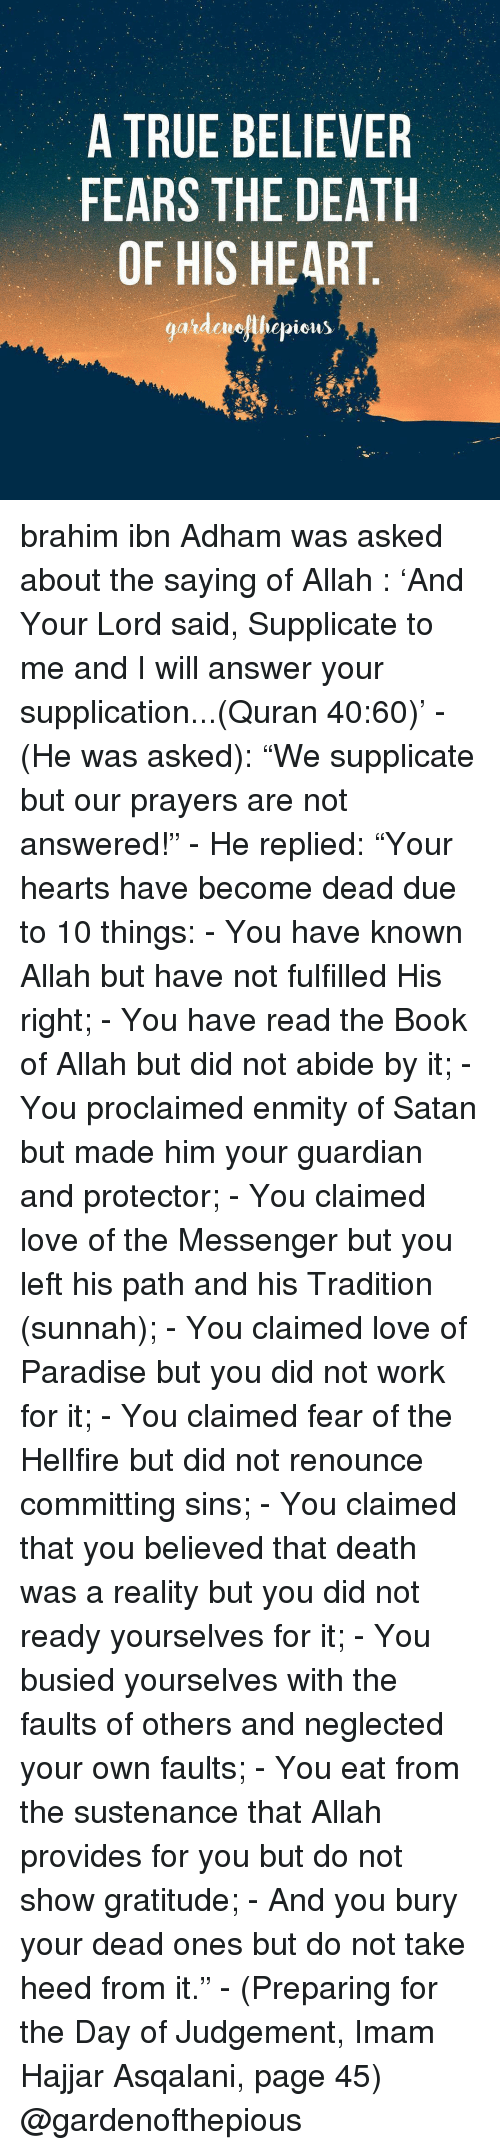 """provident: A TRUE BELIEVER  FEARS THE DEATH  OF HIS HEART  gardenelllepicus brahim ibn Adham was asked about the saying of Allah ﷻ: 'And Your Lord said, Supplicate to me and I will answer your supplication...(Quran 40:60)' - (He was asked): """"We supplicate but our prayers are not answered!"""" - He replied: """"Your hearts have become dead due to 10 things: - You have known Allah but have not fulfilled His right; - You have read the Book of Allah but did not abide by it; - You proclaimed enmity of Satan but made him your guardian and protector; - You claimed love of the Messenger but you left his path and his Tradition (sunnah); - You claimed love of Paradise but you did not work for it; - You claimed fear of the Hellfire but did not renounce committing sins; - You claimed that you believed that death was a reality but you did not ready yourselves for it; - You busied yourselves with the faults of others and neglected your own faults; - You eat from the sustenance that Allah provides for you but do not show gratitude; - And you bury your dead ones but do not take heed from it."""" - (Preparing for the Day of Judgement, Imam Hajjar Asqalani, page 45) @gardenofthepious"""